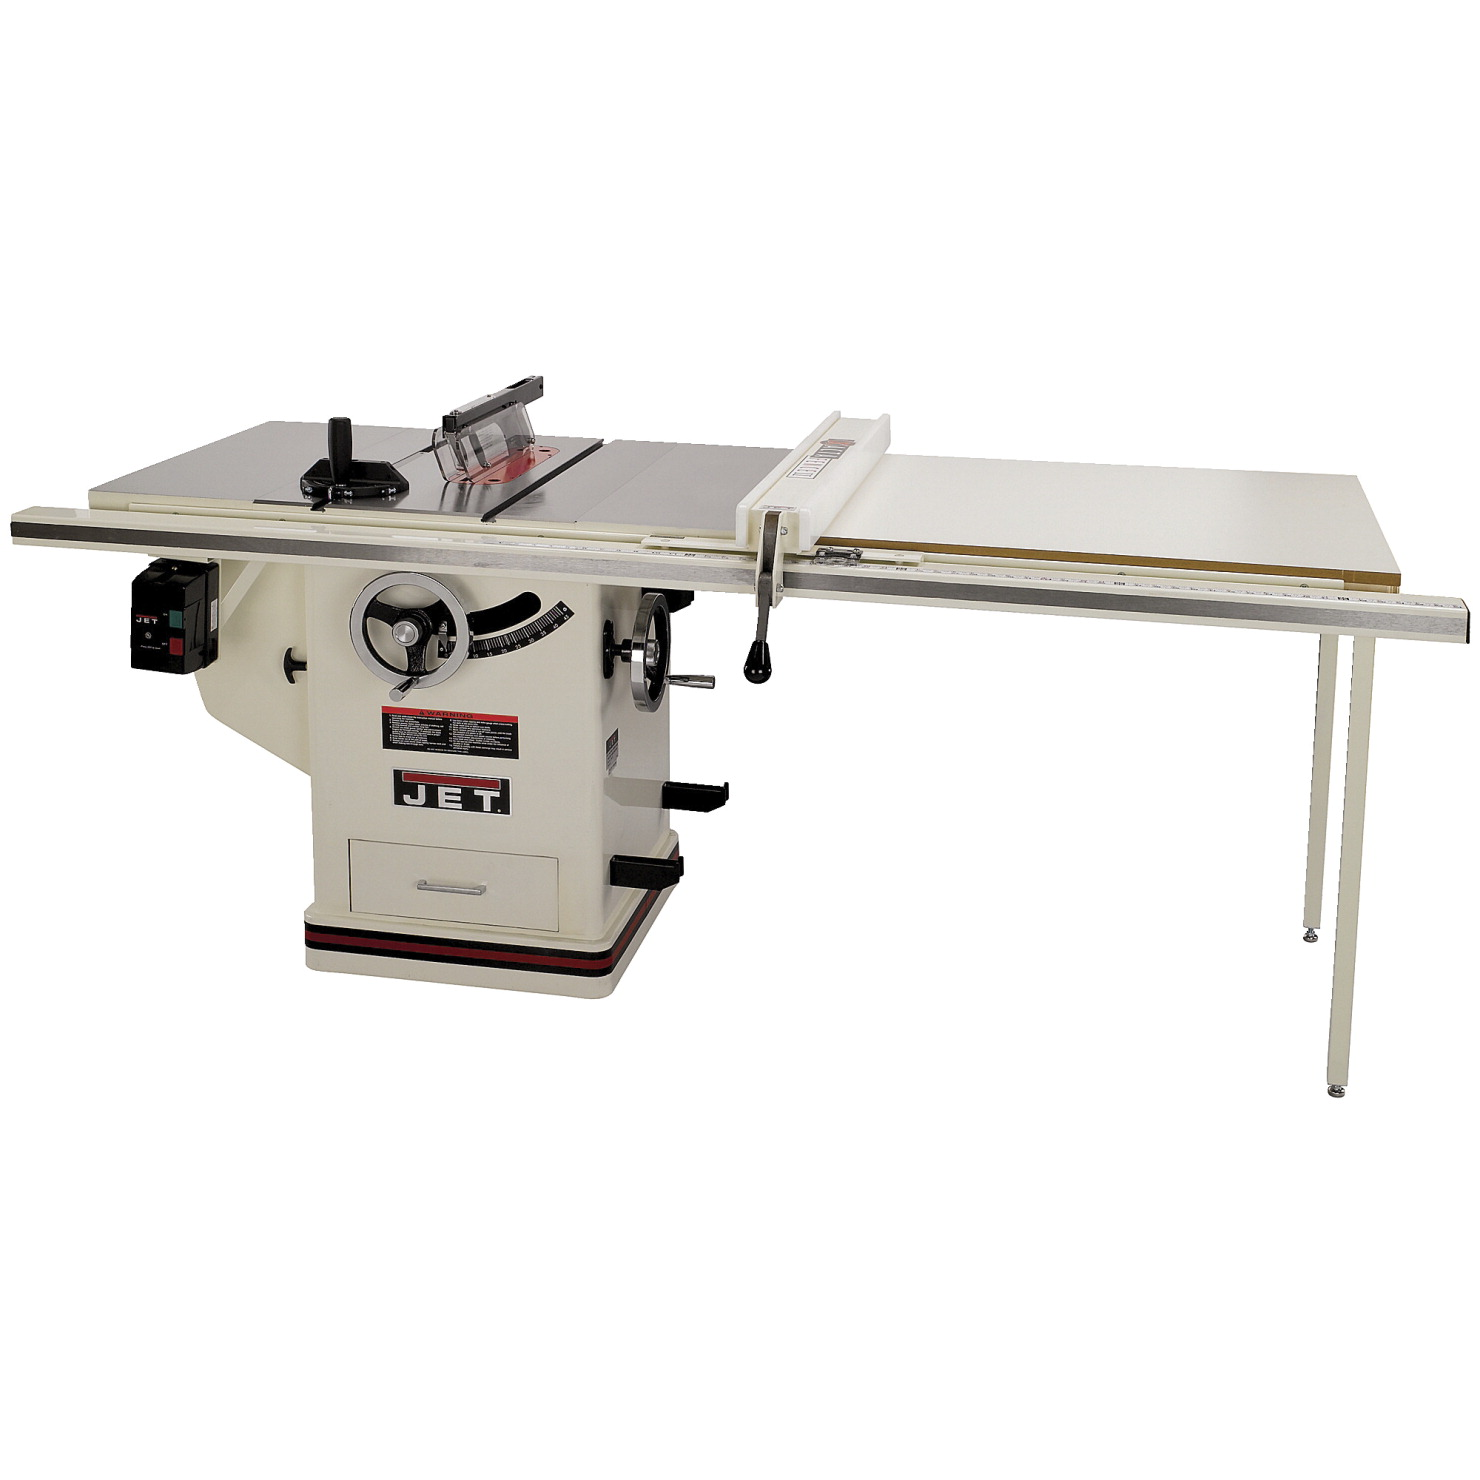 Table Saw School Specialty Marketplace